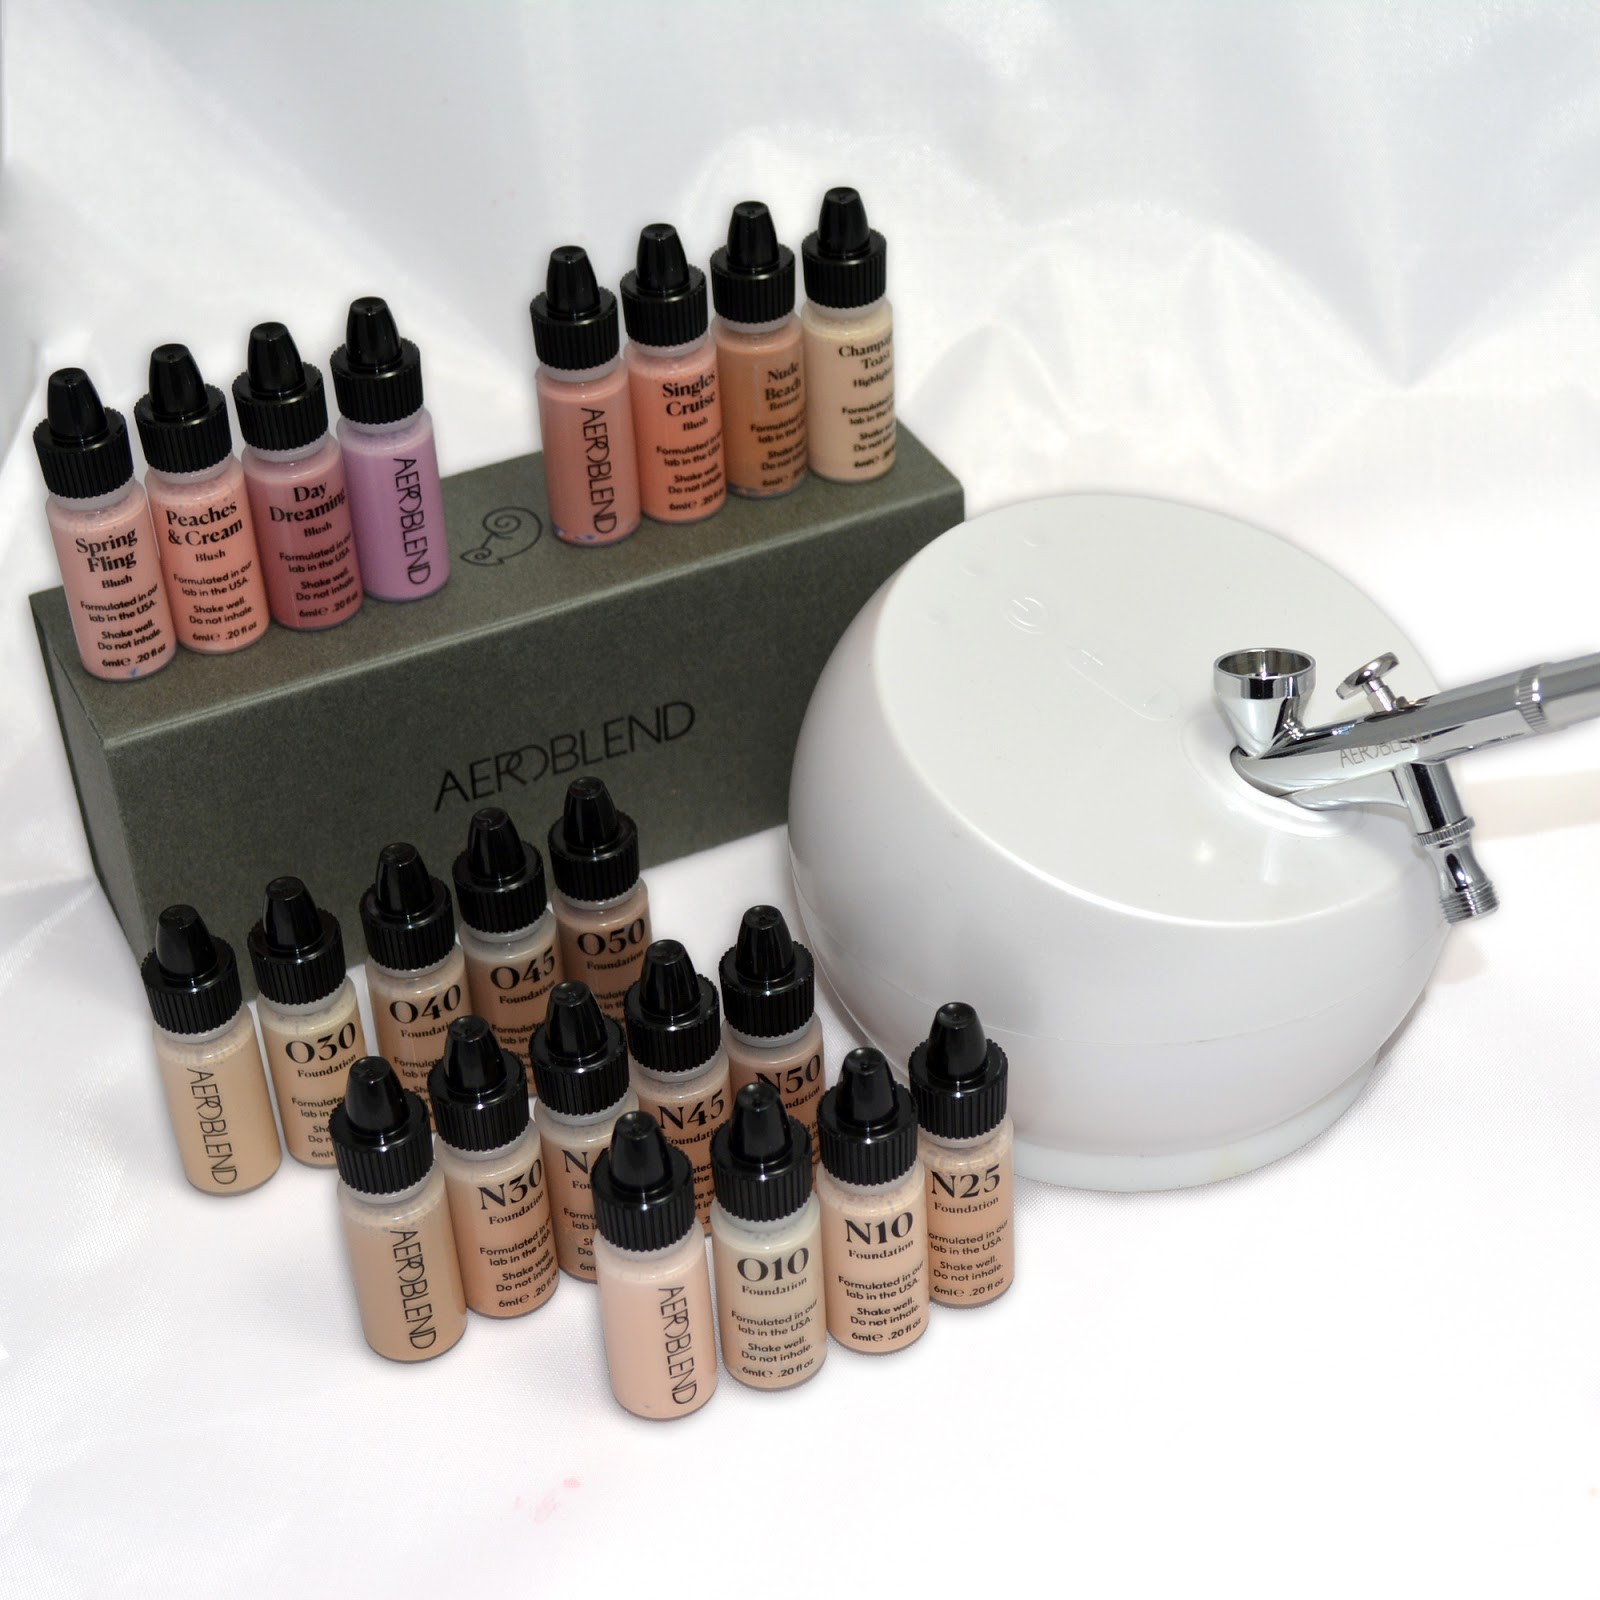 The Airbrush Makeup Guru Aeroblend Airbrush Makeup 2 0 Starter Pro